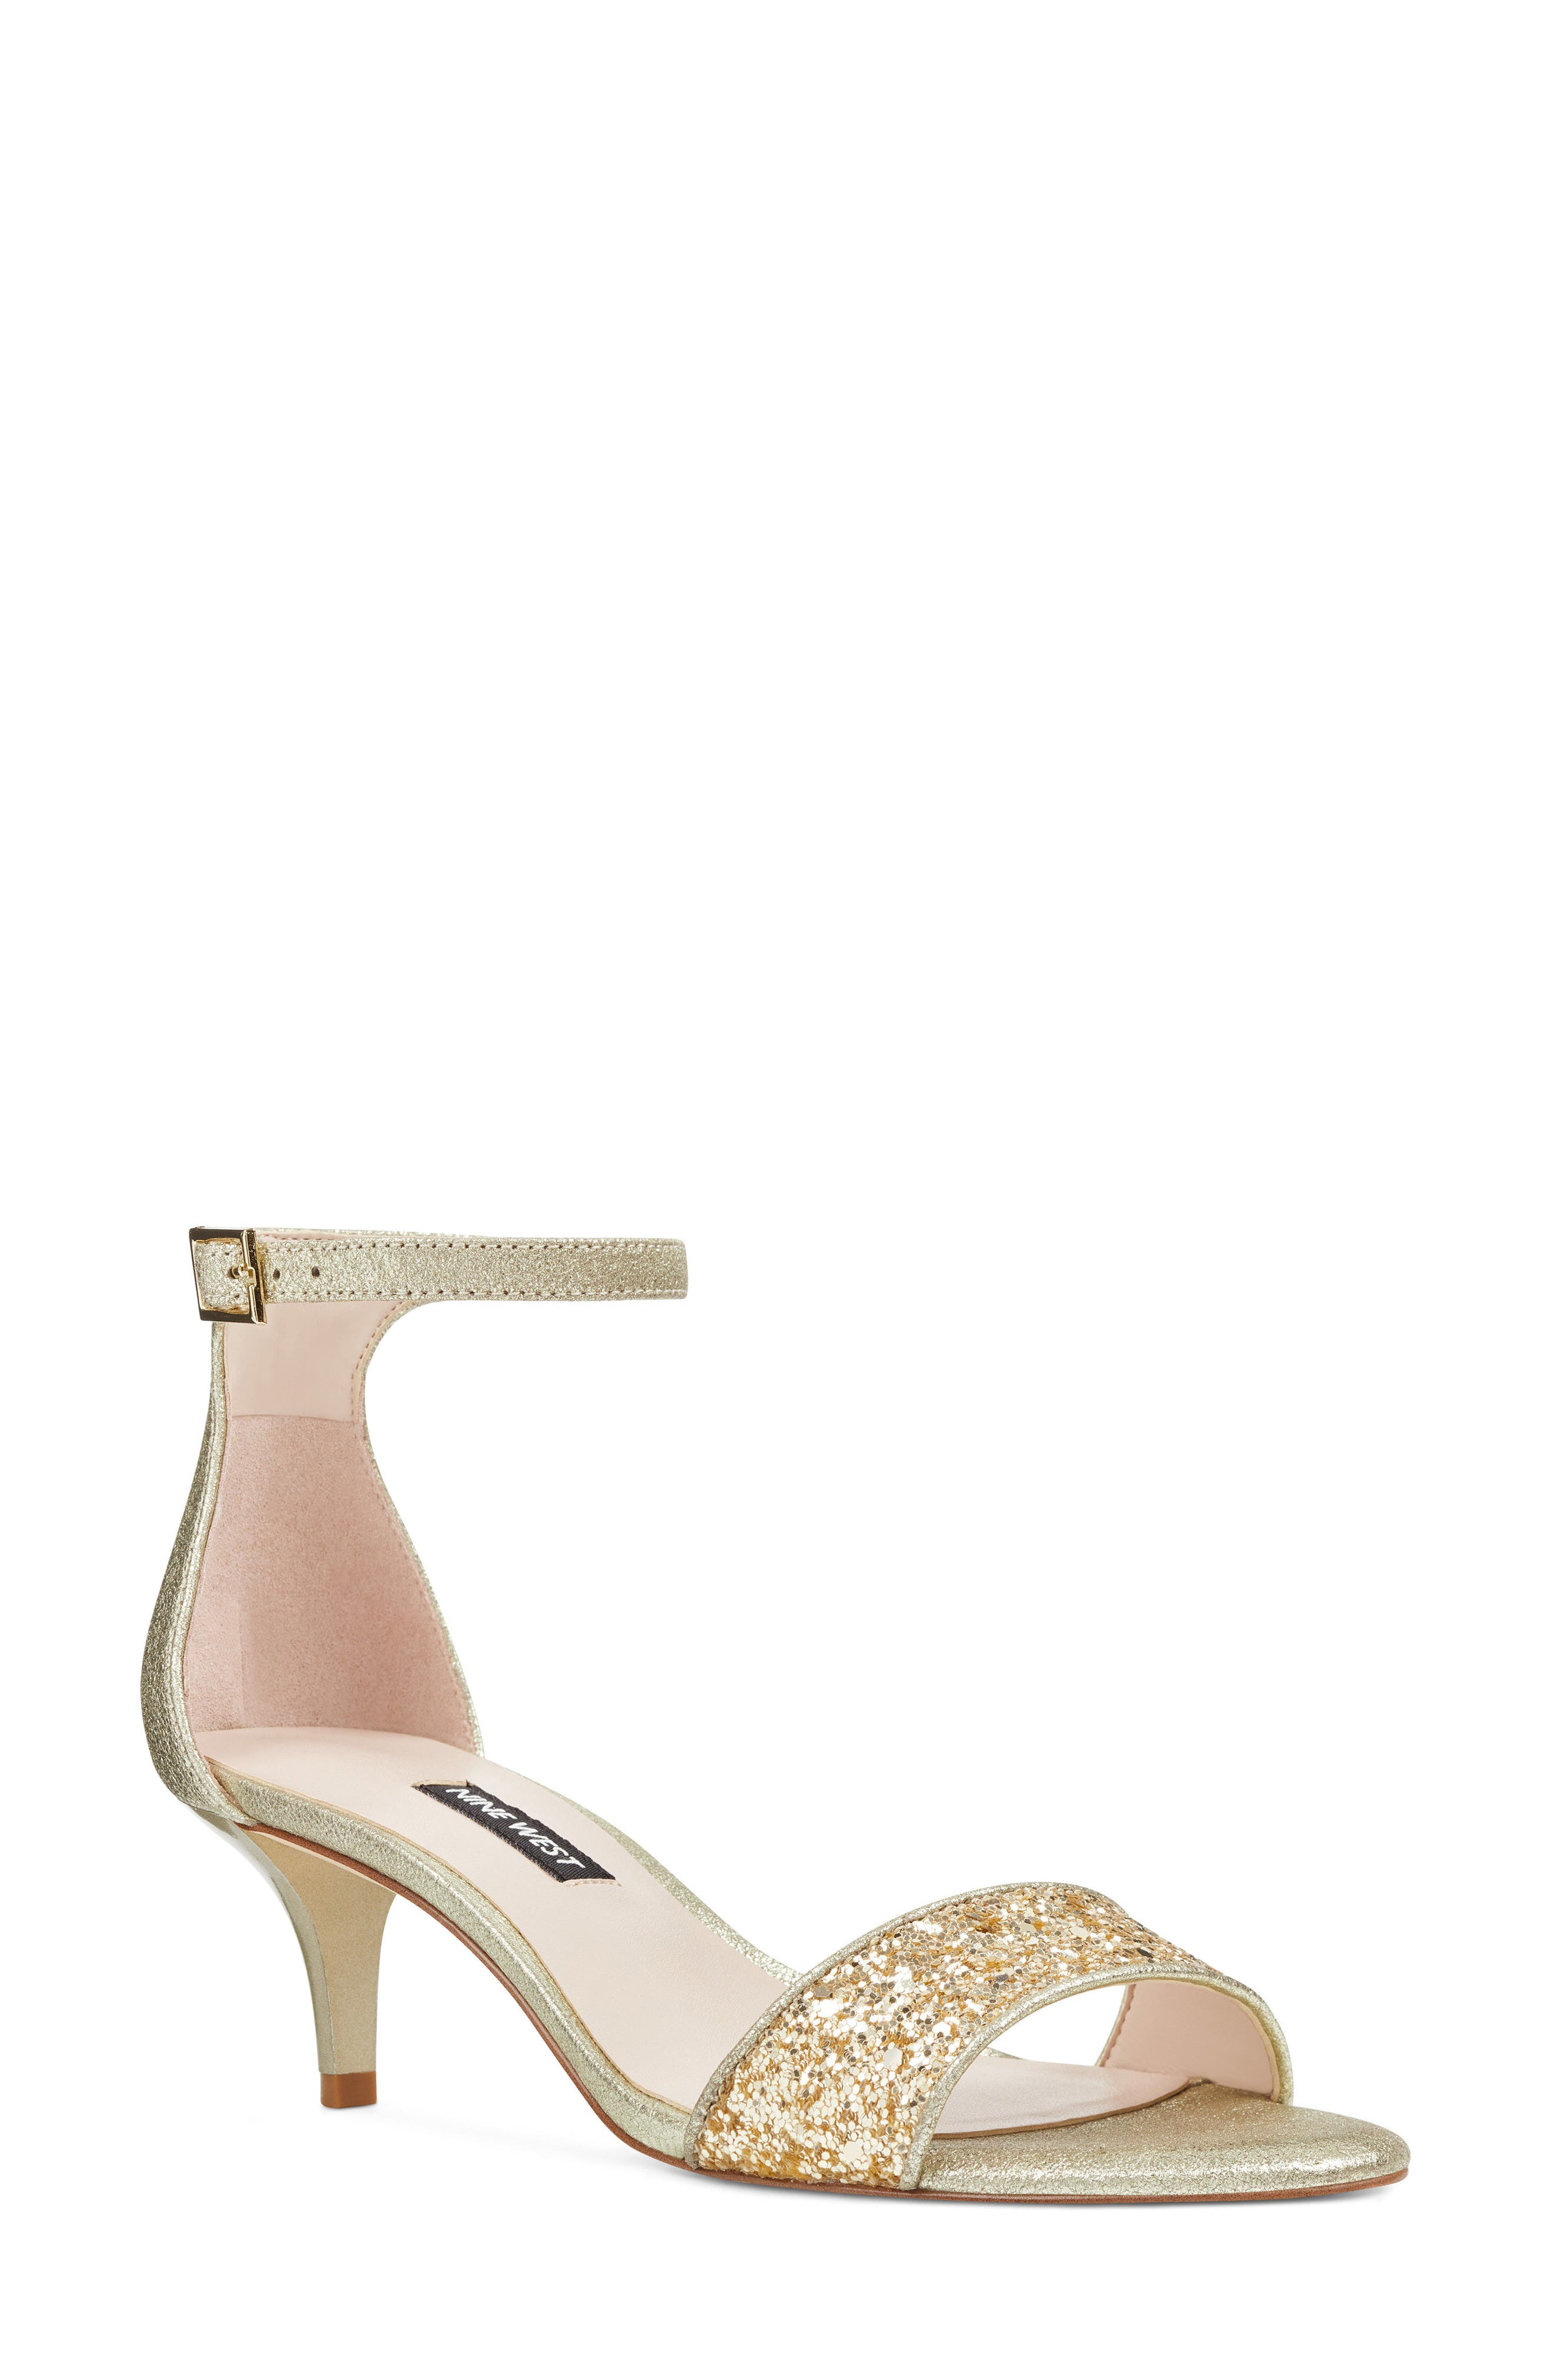 'Leisa' Ankle Strap Sandal,                             Main thumbnail 1, color,                             Light Gold Fabric